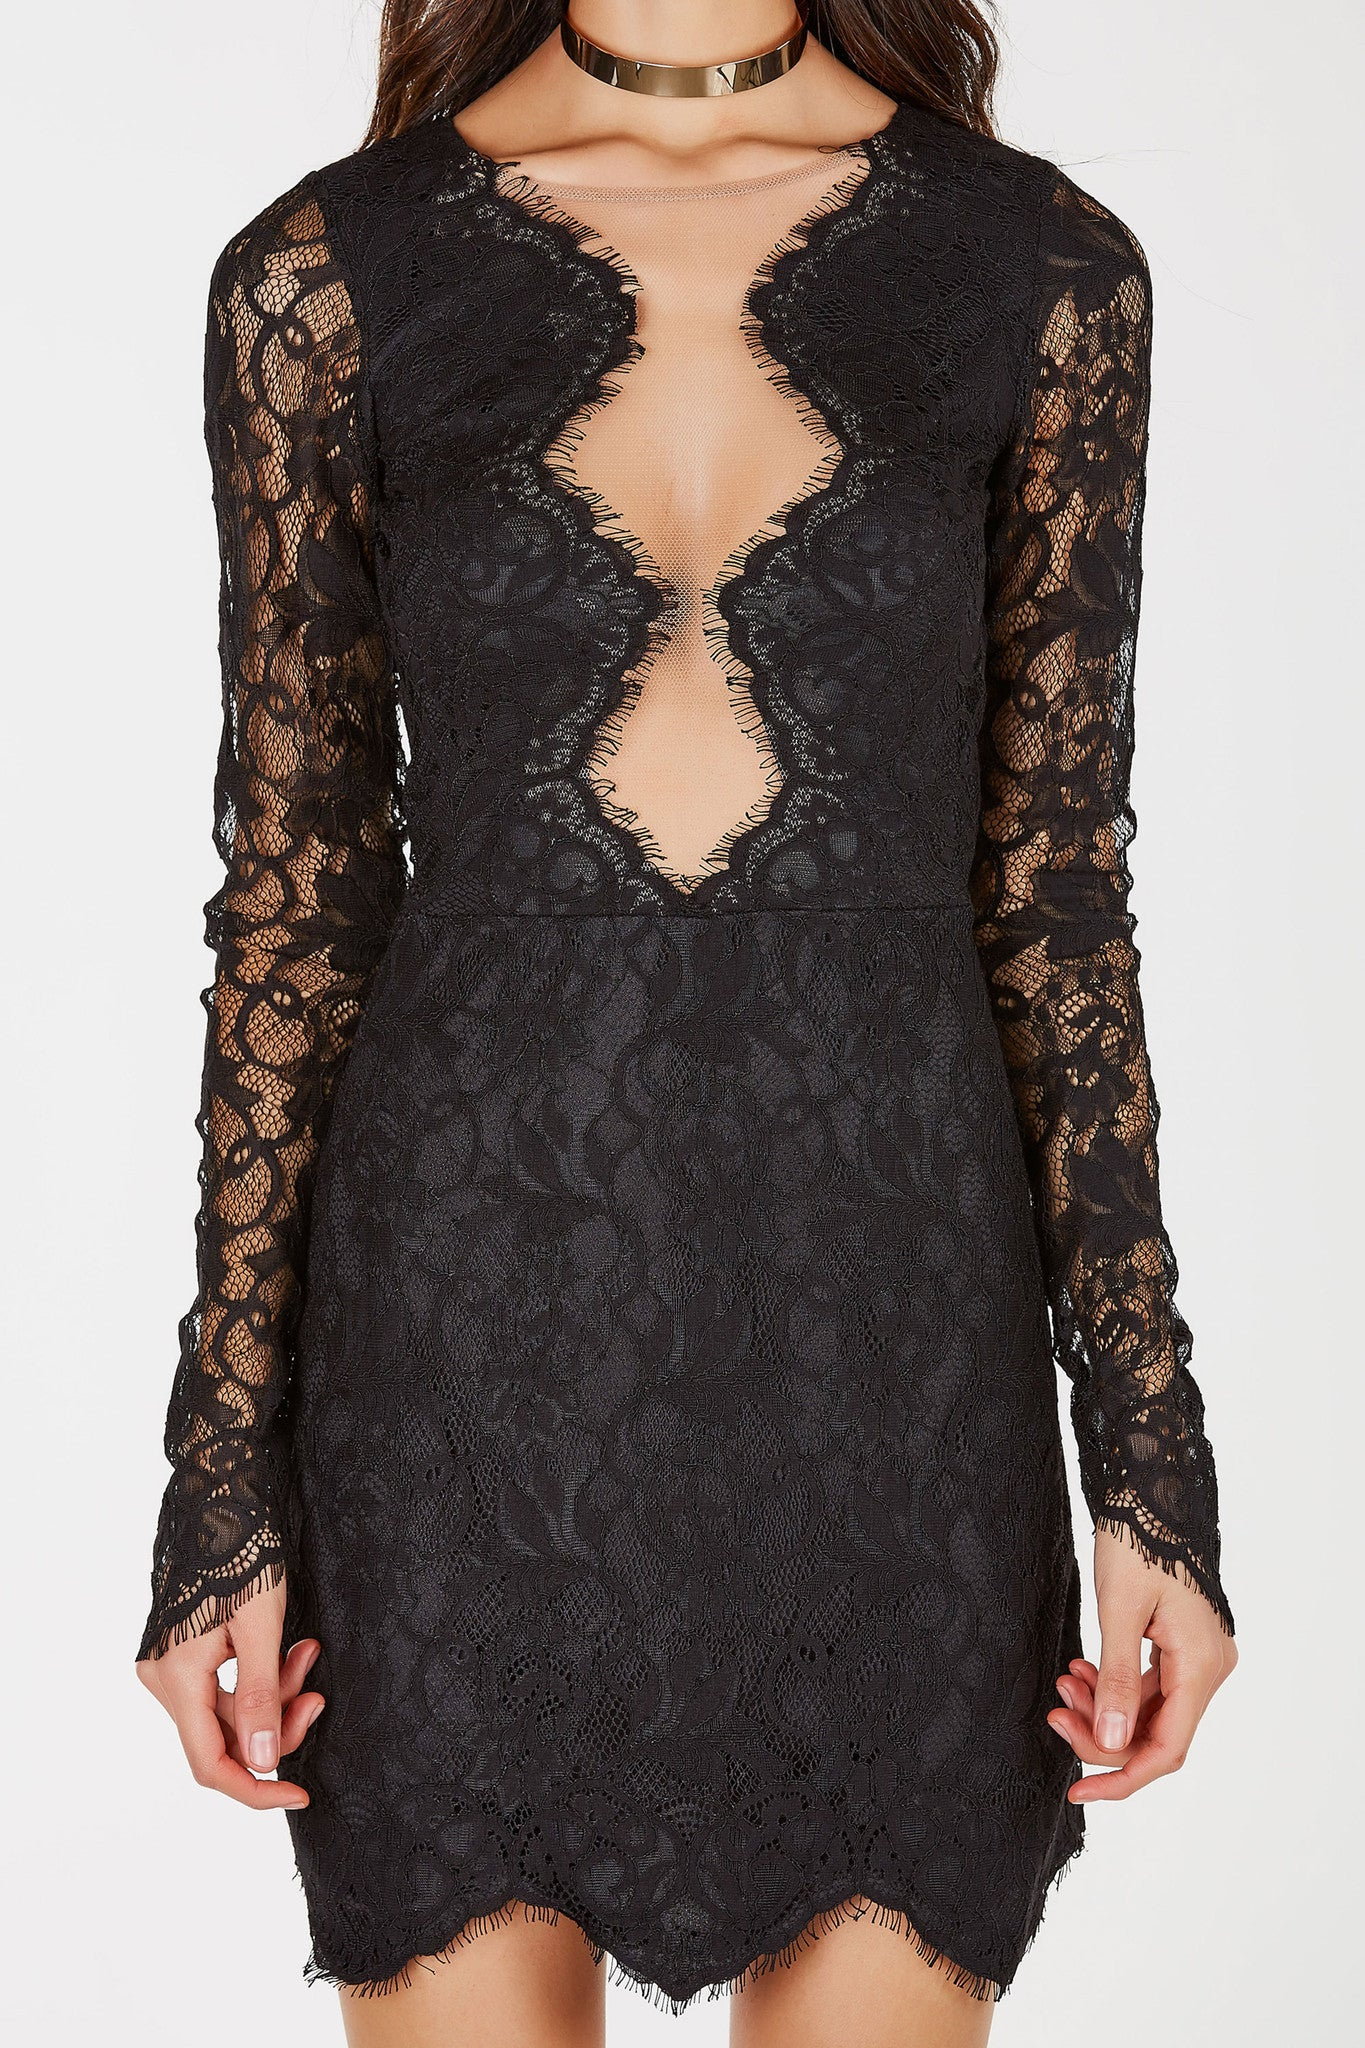 A sophisticated party dress with a gorgeous lace exterior. Contrast mesh panel in front for a sultry vibe. Long fitted sleeves with a peek-a-boo effect. Intricate eyelash trim adds a boost of femininity. The perfect evening dress for special nights out!